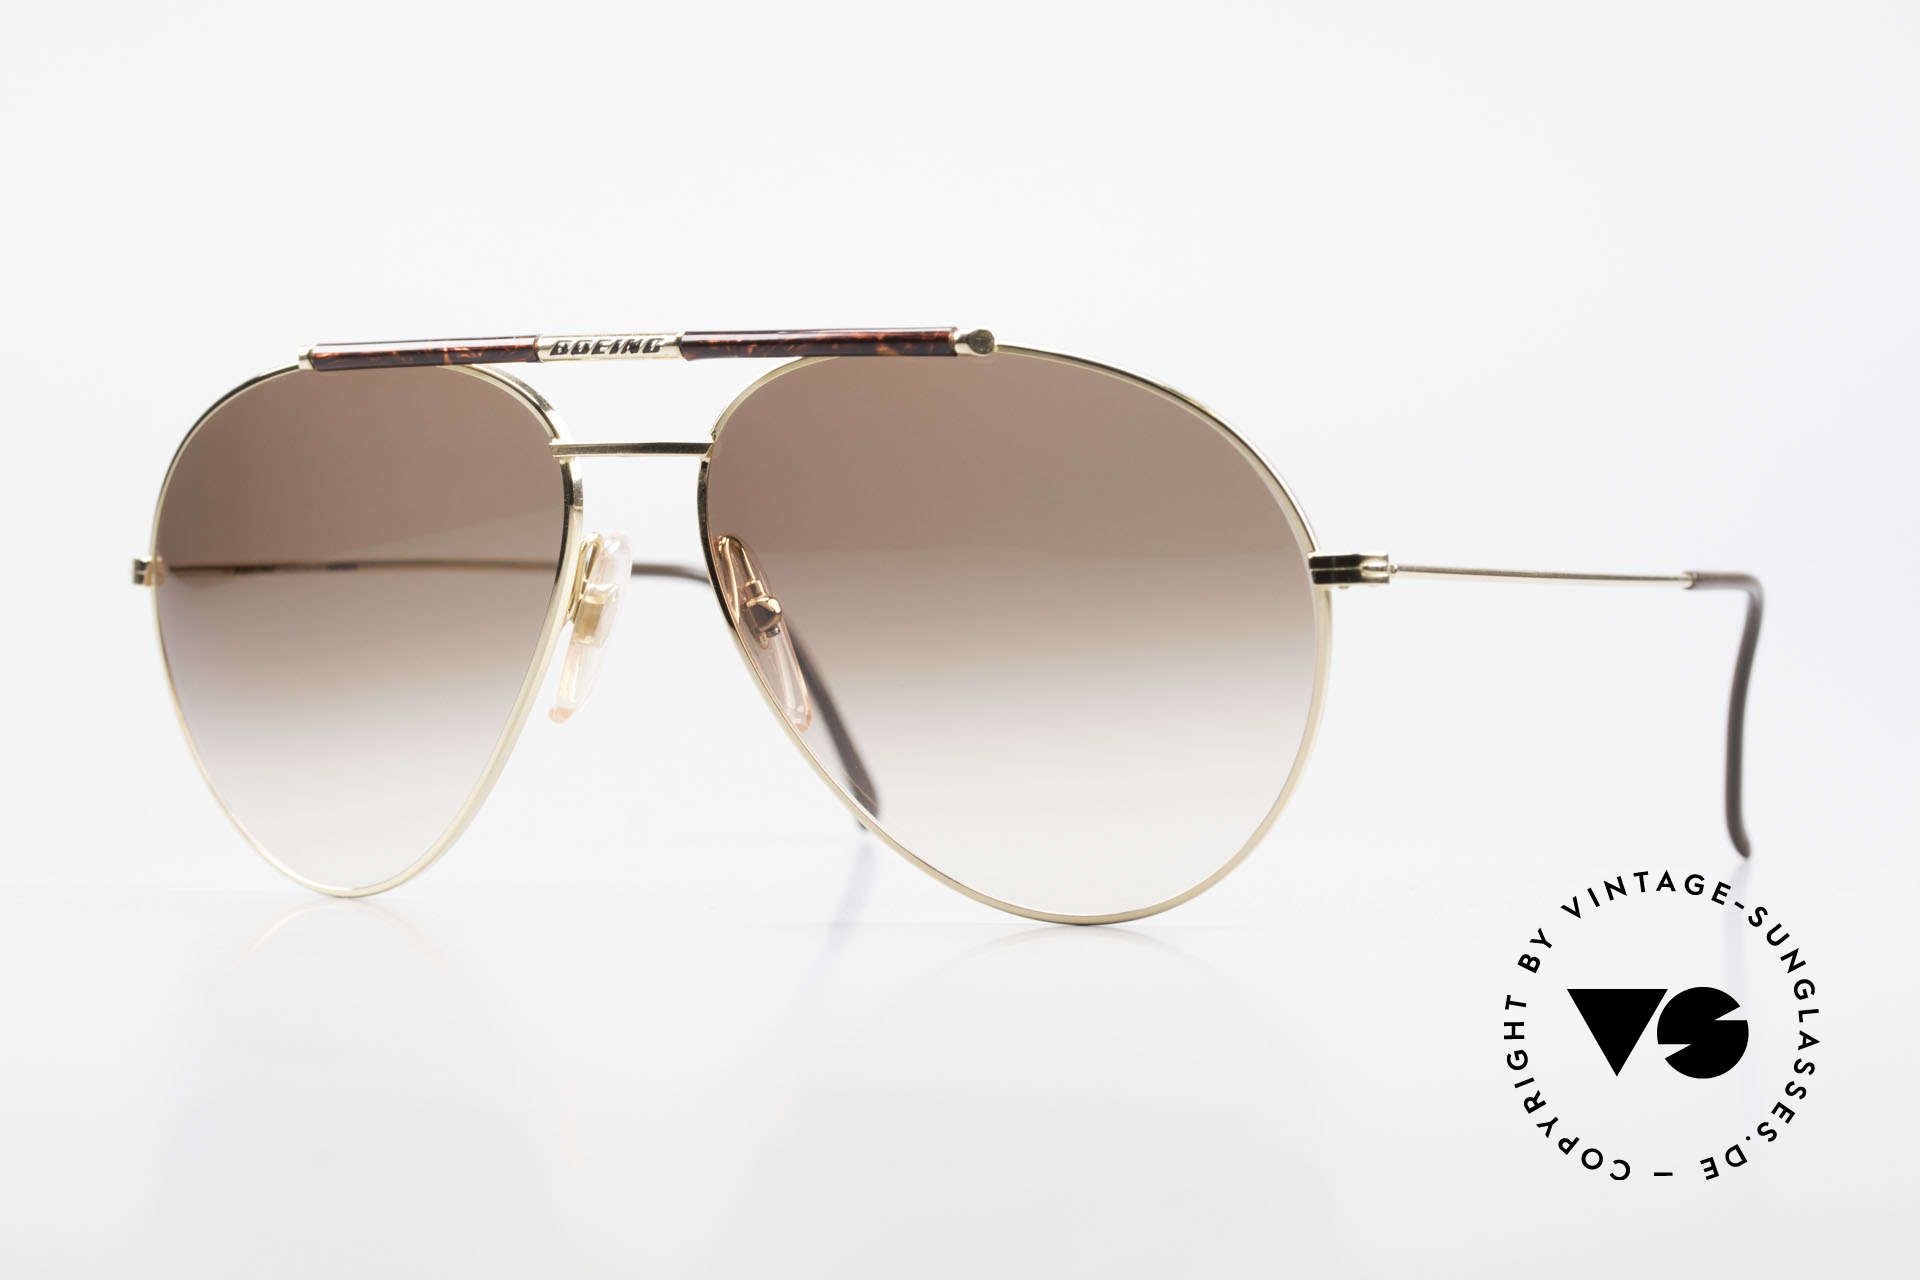 Boeing 5706 No Retro Glasses True Vintage, the legendary 'The BOEING Collection by Carrera', Made for Men